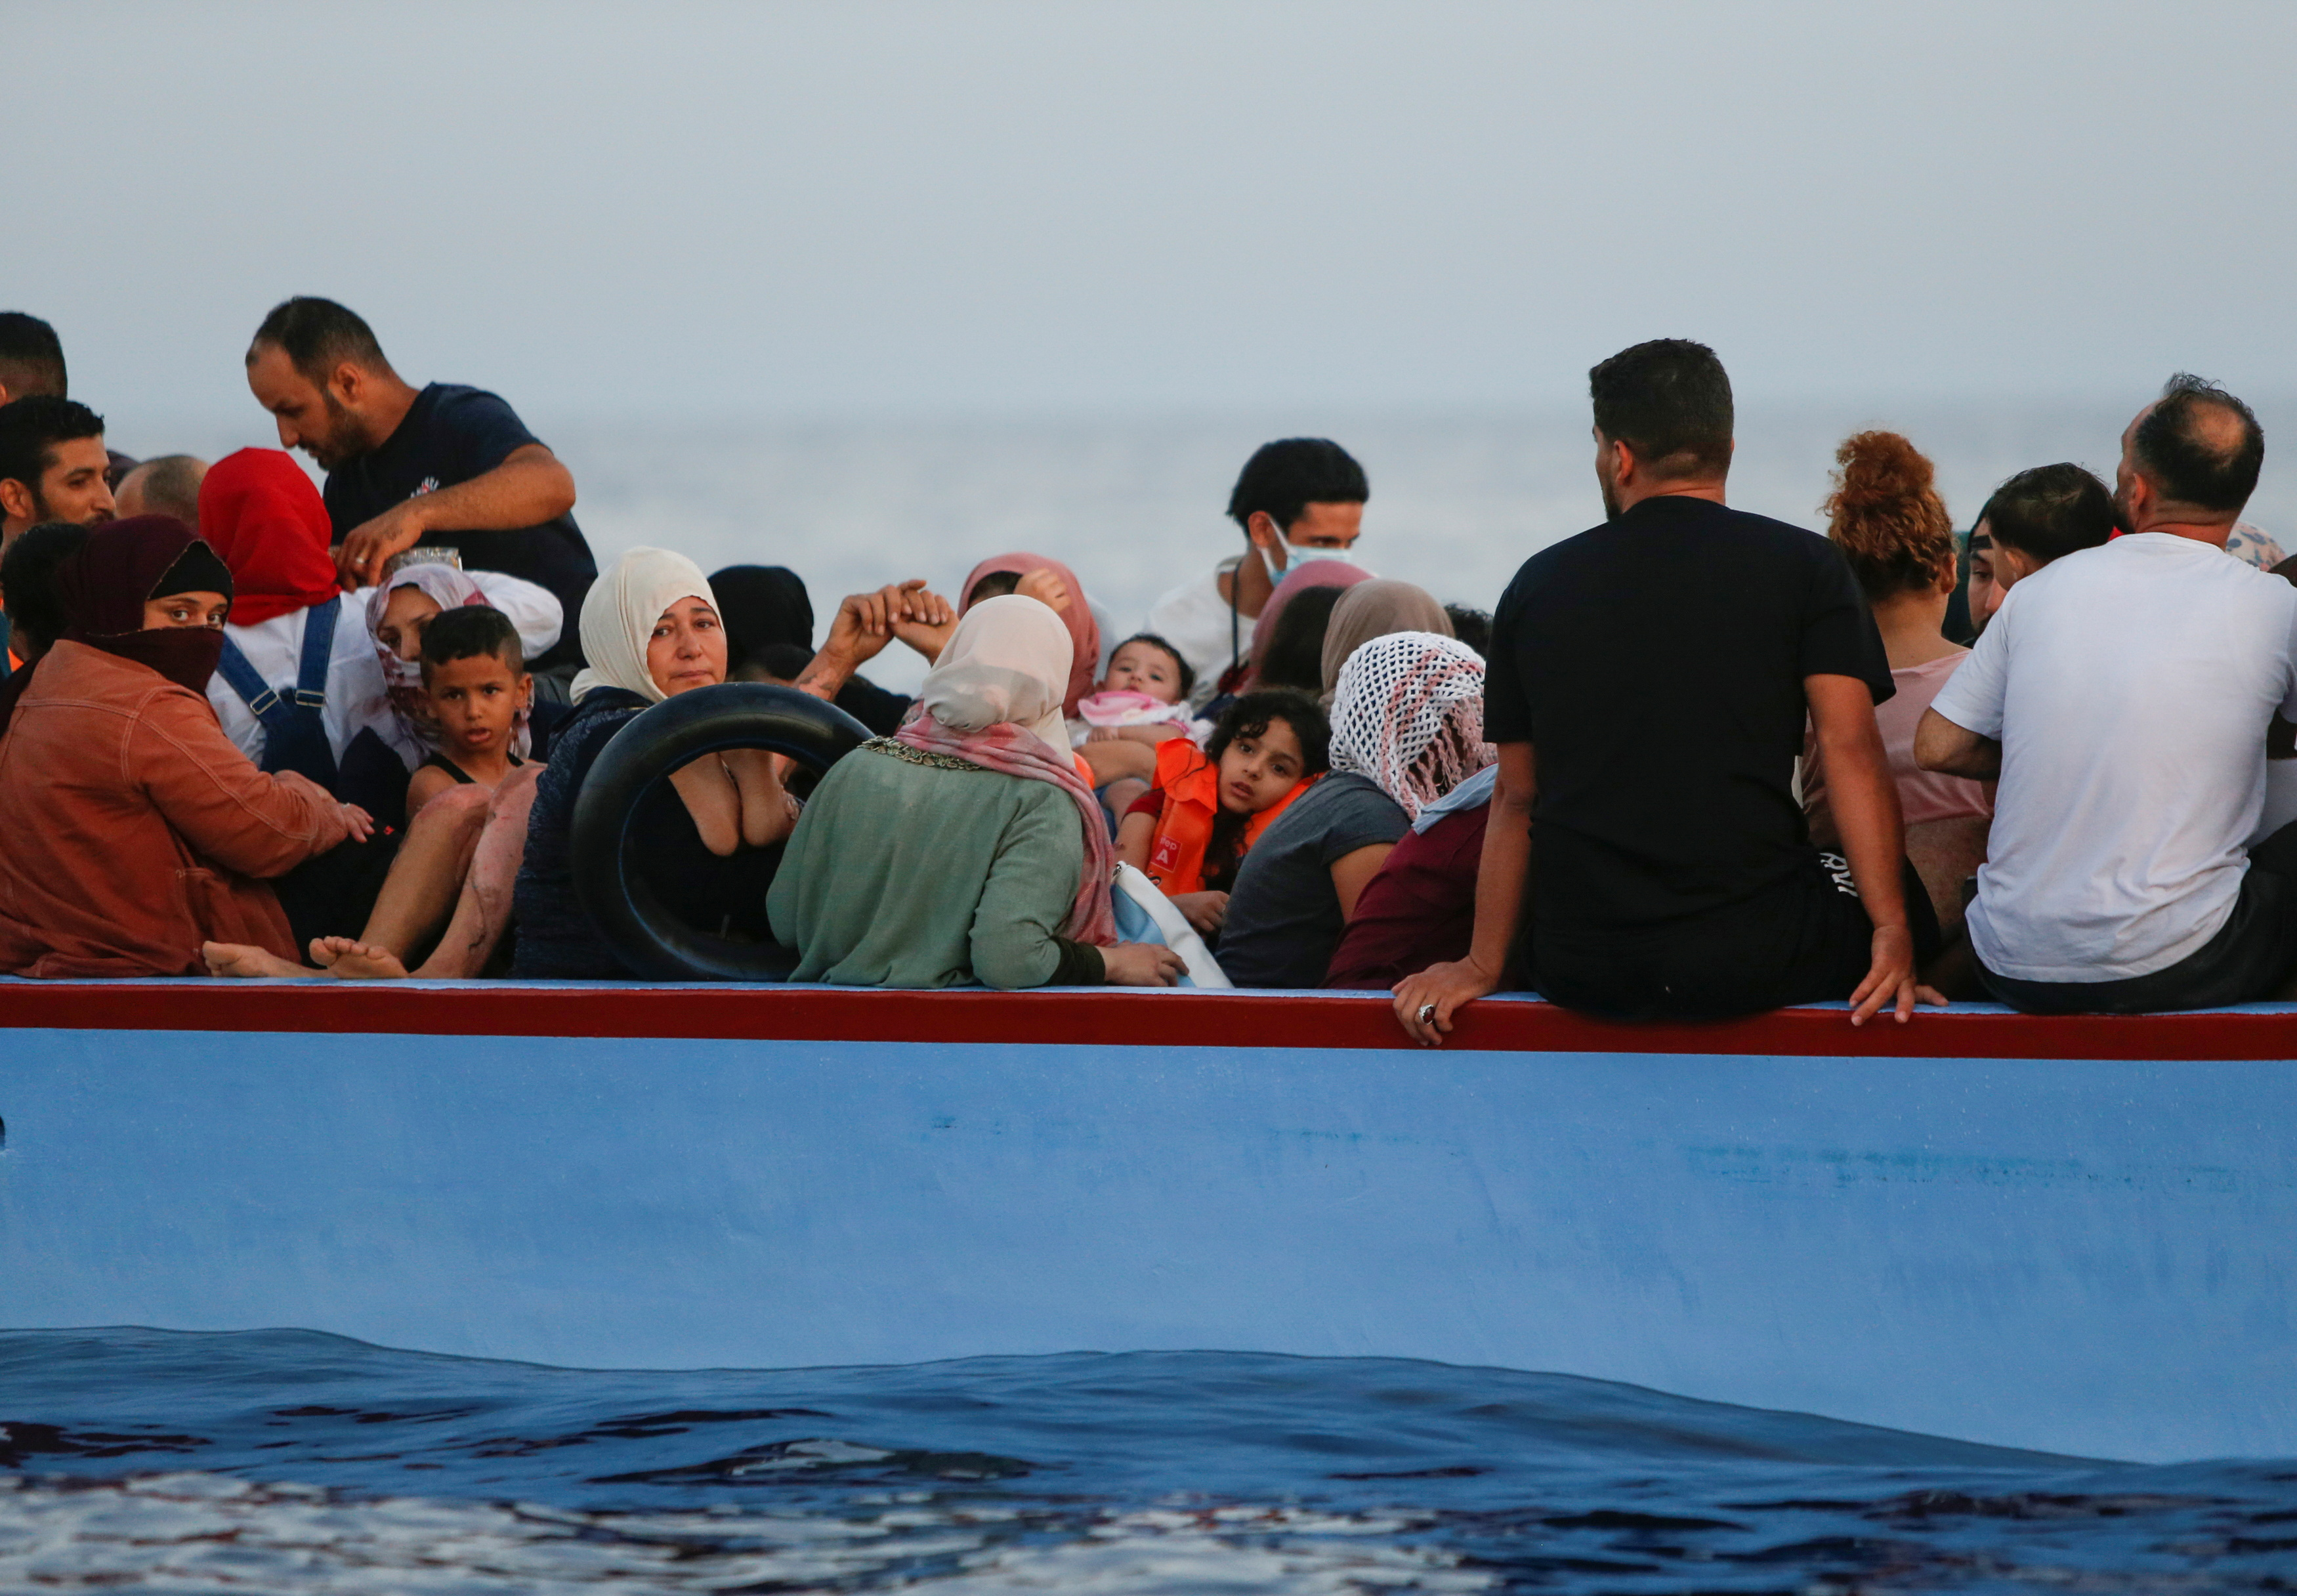 Migrants wait in a wooden boat to be rescued by the German NGO migrant rescue ship Sea-Watch 3 in international waters off the coast of Libya, in the western Mediterranean Sea, July 30, 2021.  REUTERS/Darrin Zammit Lupi